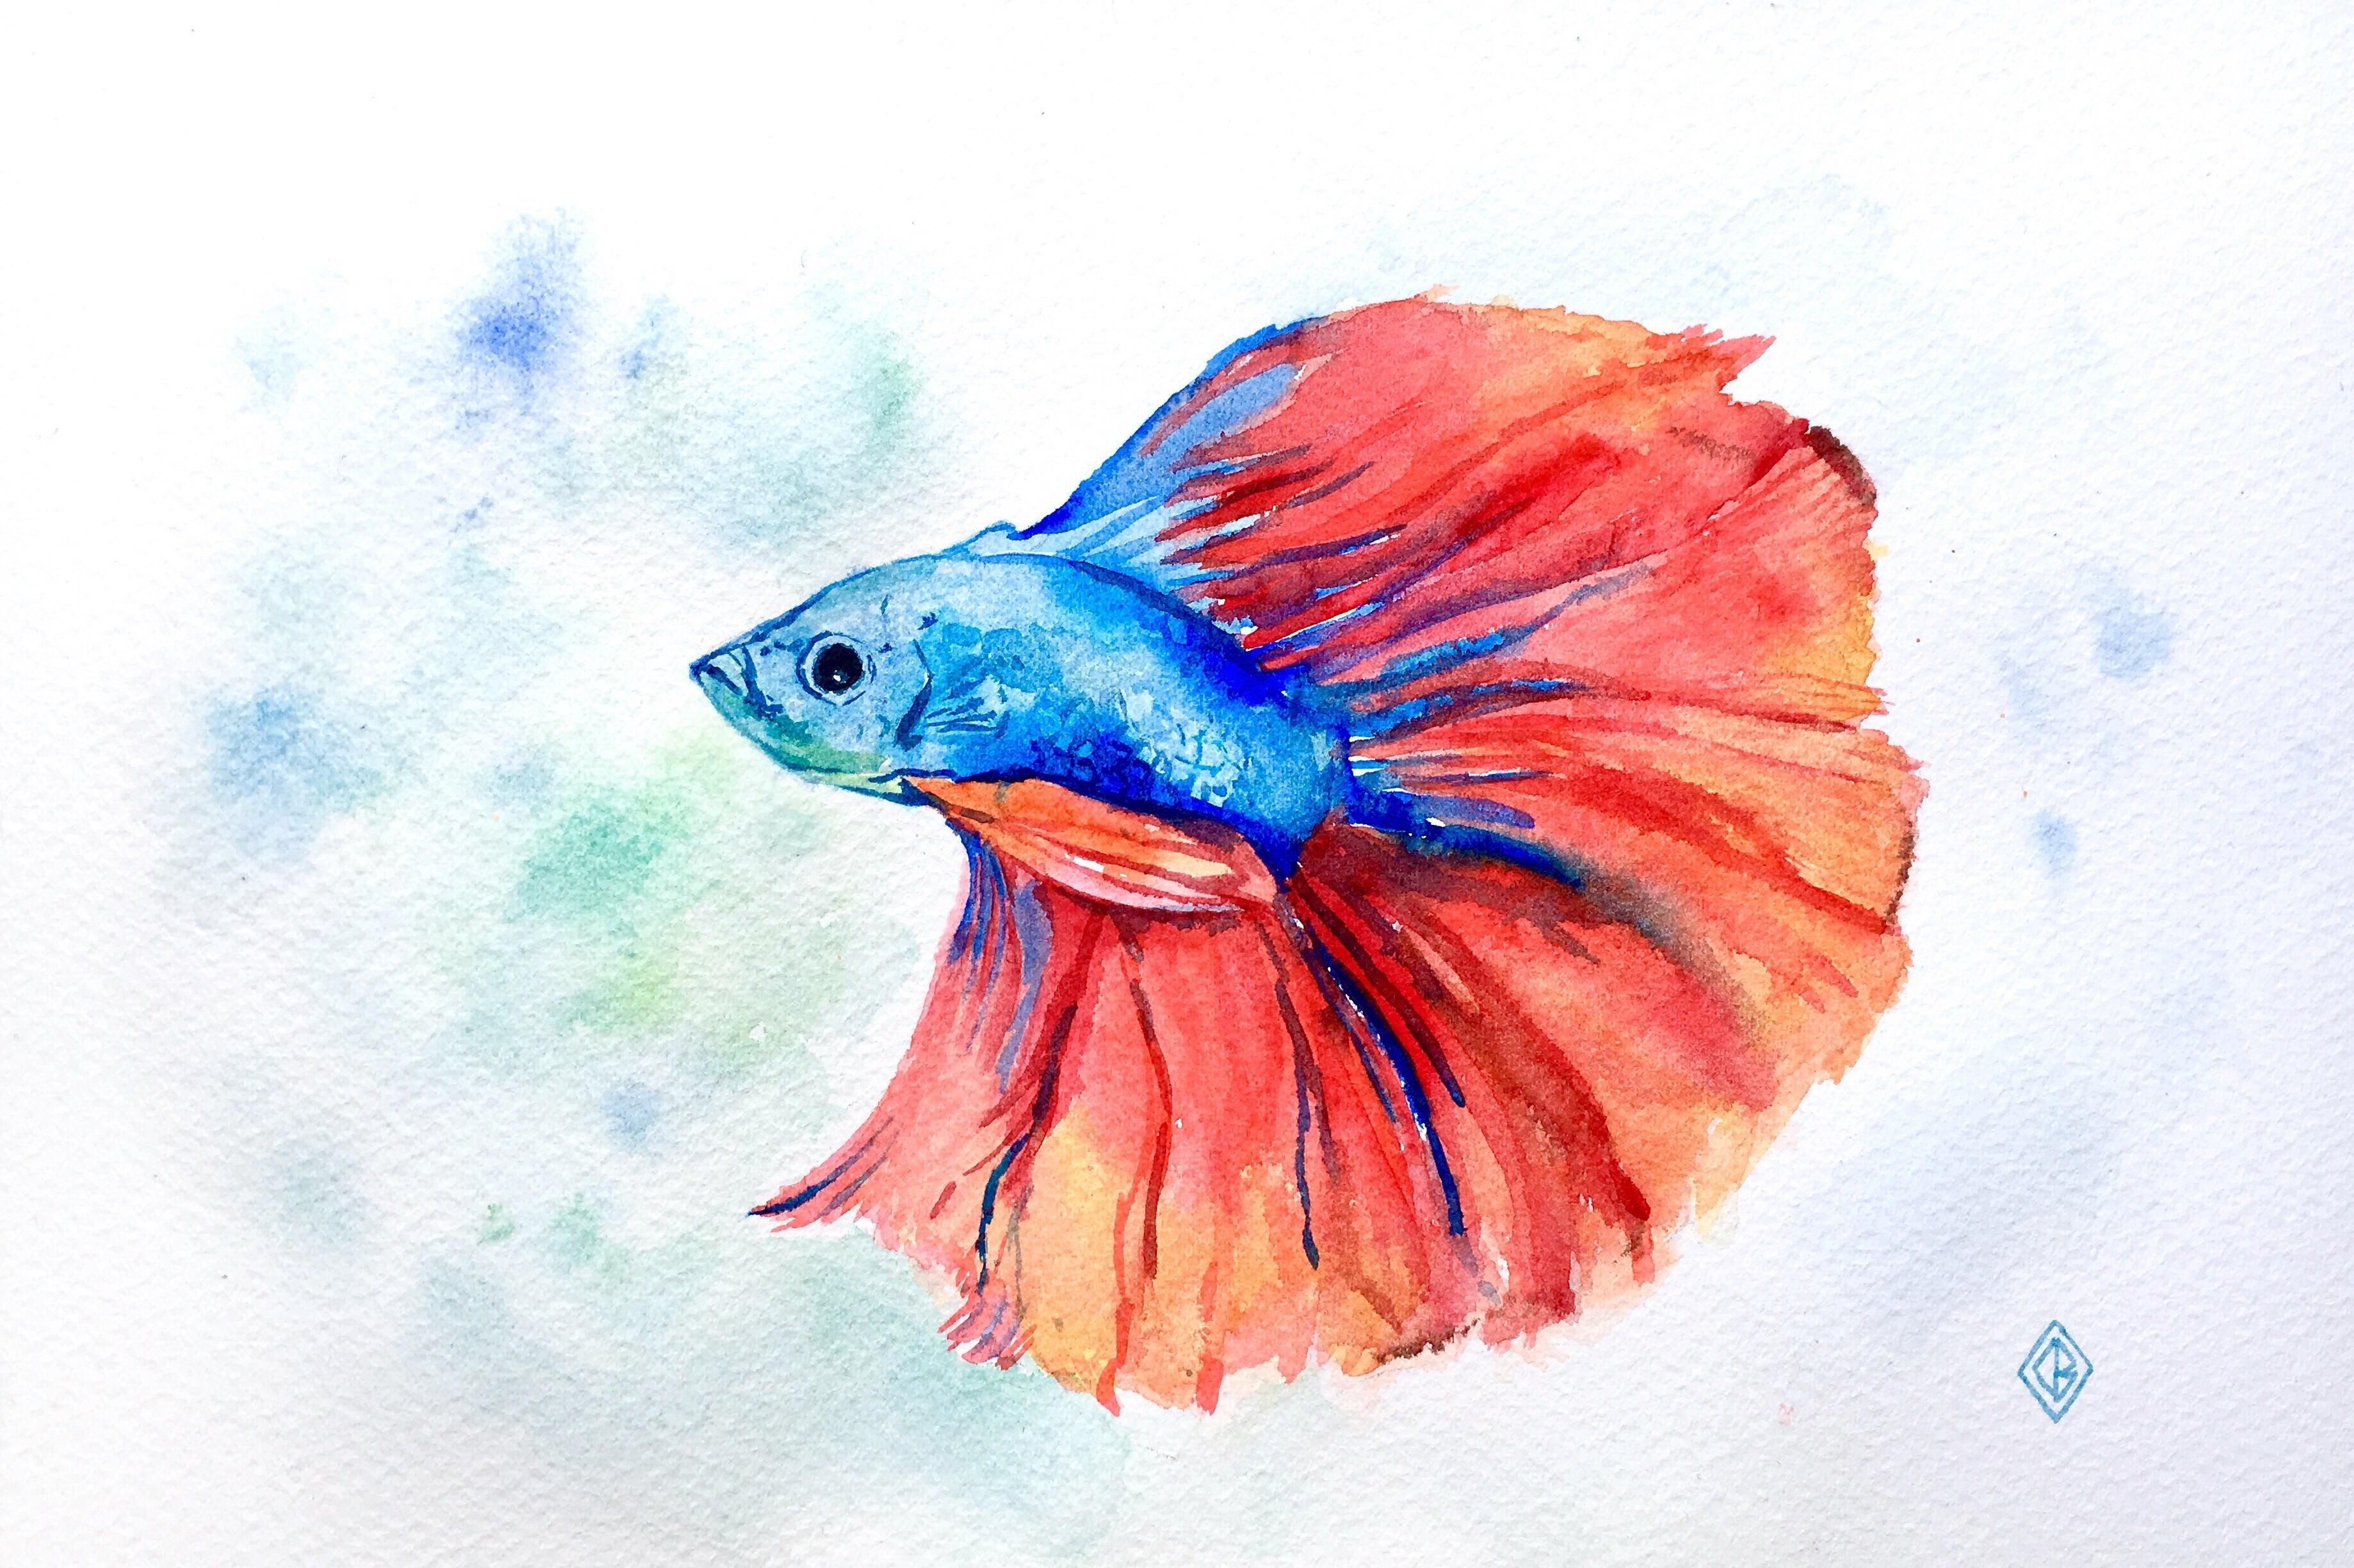 Betta Fish Watercolor 6x9 Https Ift Tt 2lnbi2t Watercolor Fish